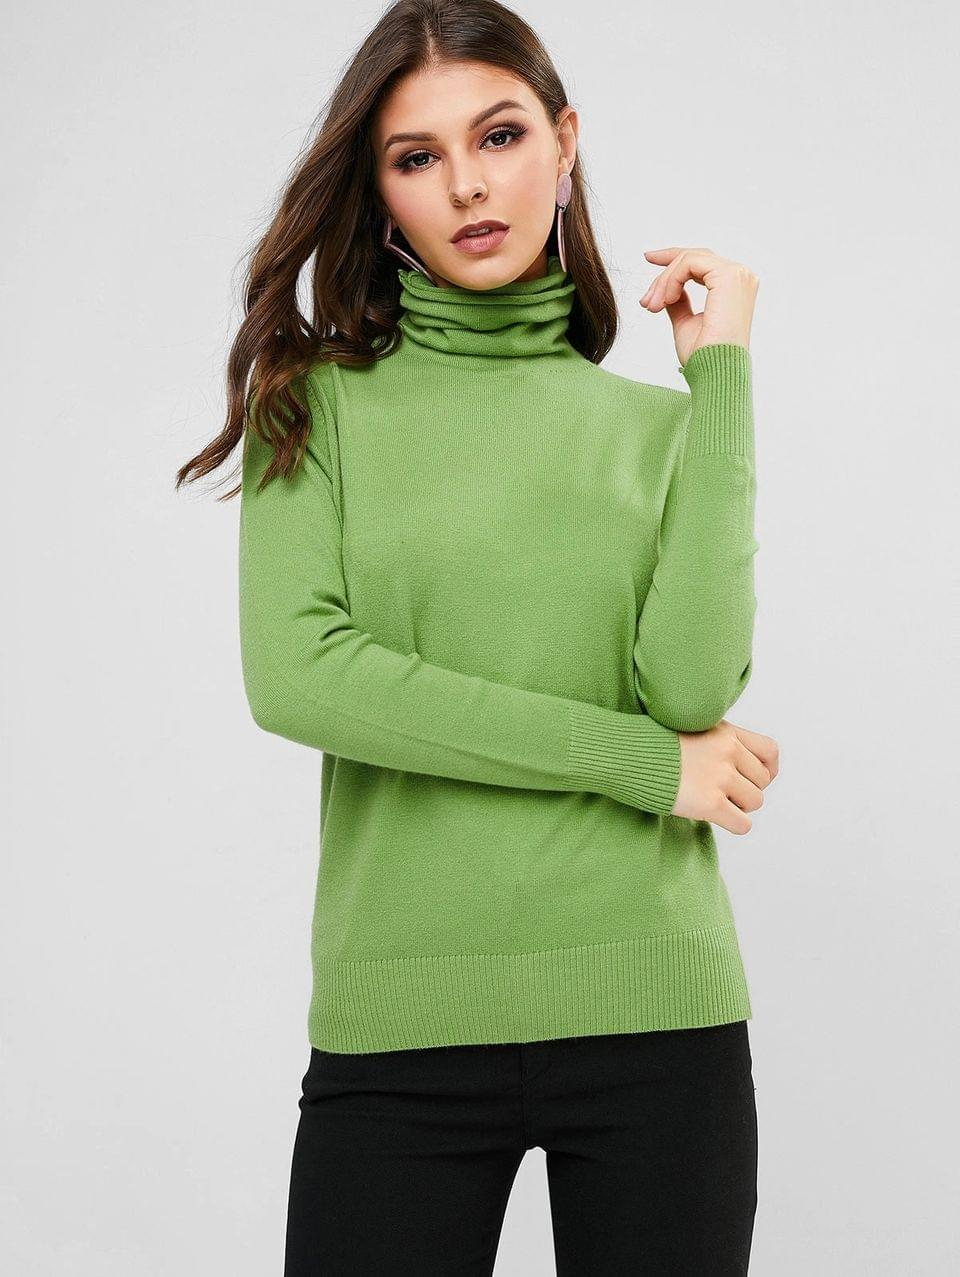 Women's Solid Ribbed Hem Turtleneck Pullover Sweater - Green Peas